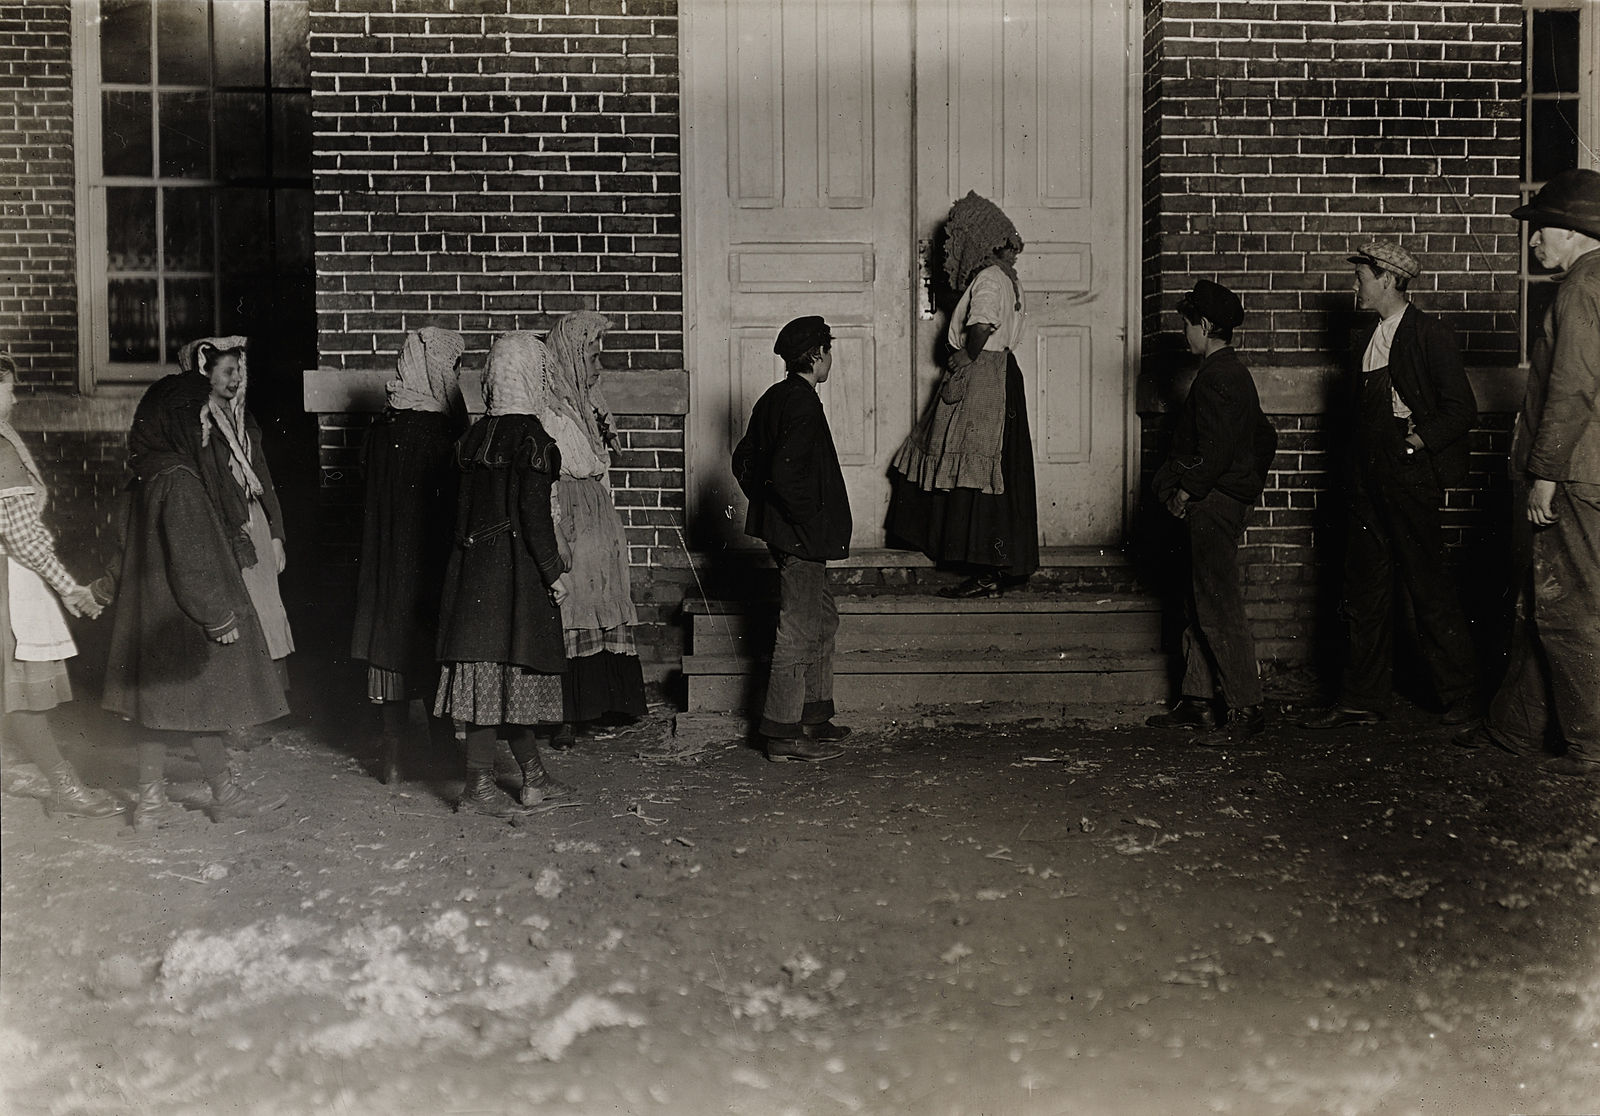 Child laborers clocking in for a 12-hour night shift (6pm - 6am) at a cotton mill in 1908 (https://www.flickr.com/photos/56434318@N05/6620030209)